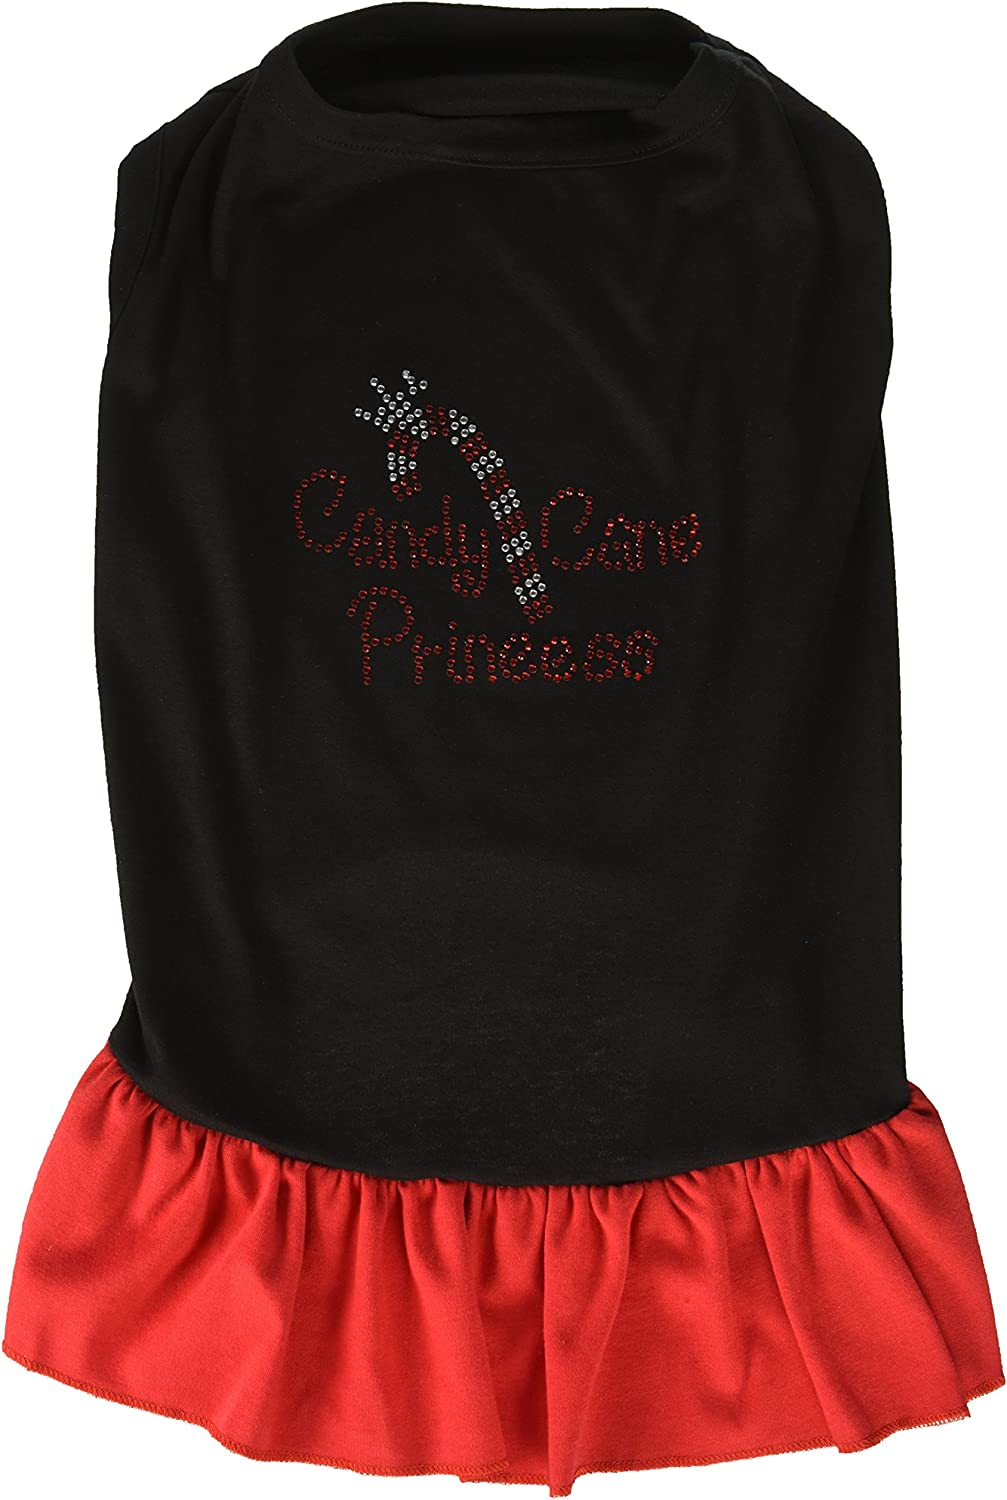 Mirage Pet Products Candy Cane Princess Rhinestone 20Inch Pet Dress, 3XLarge, Black with Red